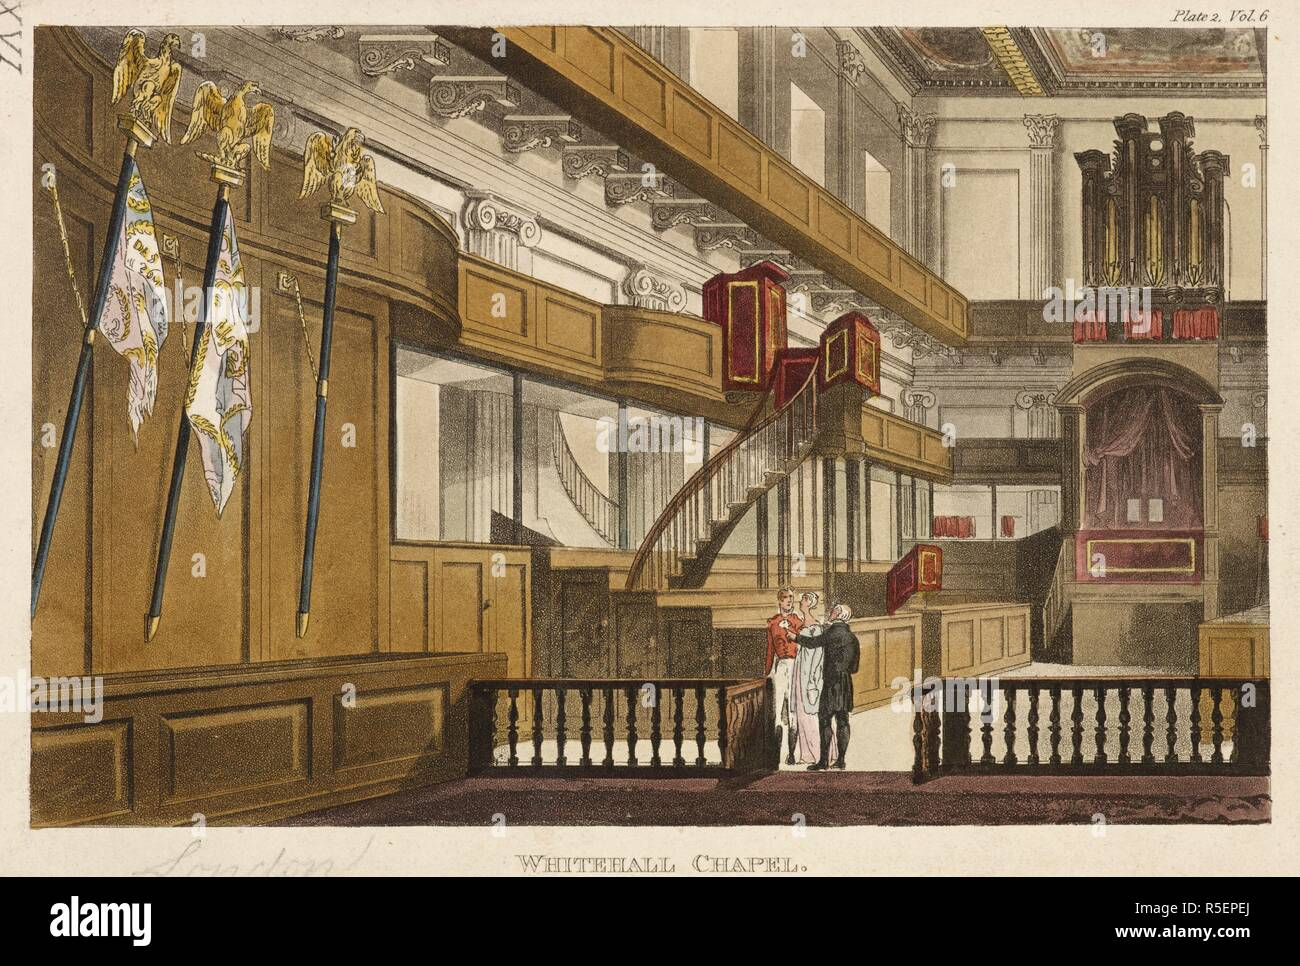 Interior of Whitehall Chapel; flags on the left; the organ on the far right; figures standing in the centre. WHITEHALL CHAPEL. [London] : [July 1811]. Etching and aquatint with hand-colouring. Source: Maps K.Top.26.5.q. Language: English. Stock Photo